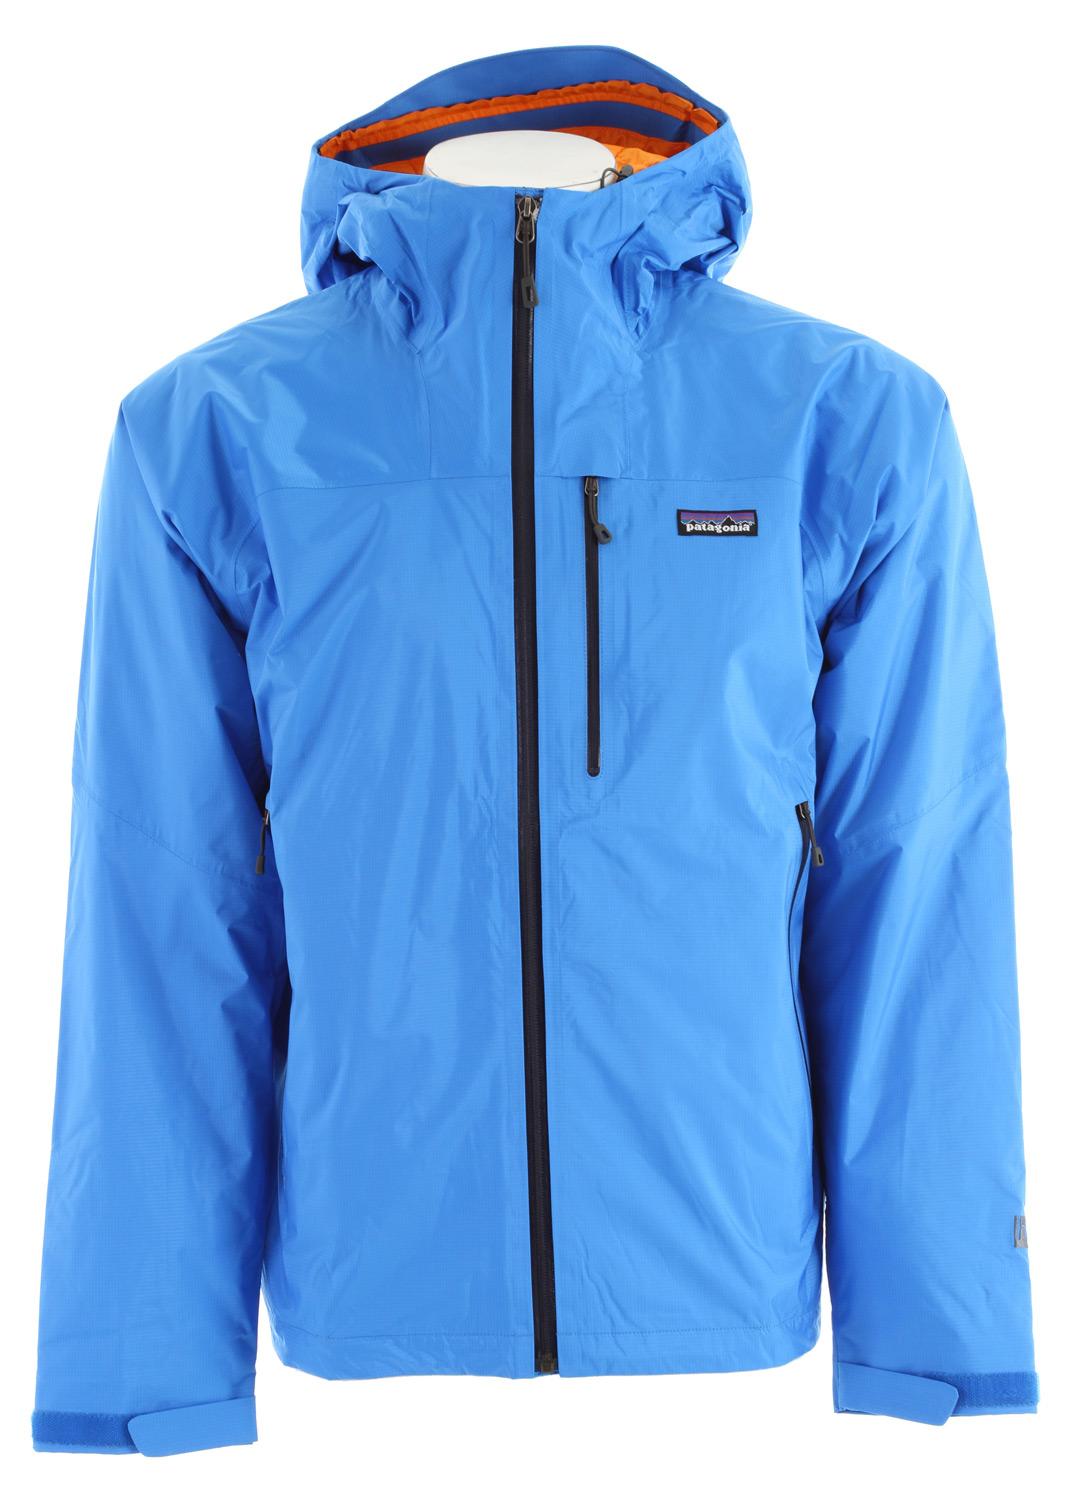 Waterproof, warm and superlight, this jacket has 2.5-layer nylon shell with a waterproof/breathable H2No barrier, and is insulated with Primaloft One polyester for cold and wet-weather protectionKey Features of the Patagonia Nano Storm Jacket: 2.5-layer nylon ripstop with a waterproof/breathable H2No barrier and Deluge DWR (durable water repellent) finish Lightweight 60-g Primaloft One polyester insulation provides excellent warmth and compressibility Unique quilt pattern holds insulation in place for durability Helmet-compatible, fully-adjustable hood with laminated visor for visibility in bad conditions Watertight, coated center-front-zipper Self-fabric hook-and-loop cuff closures and dual-adjust drawcord hem seal out the elements Pockets: Two handwarmers; one exterior left chest; one internal zippered pocket, one internal drop-in Regular fit (24.1 oz) 683 g Fabric: Shell: 2.5-layer 2.6-oz 50-denier 100% nylon ripstop with a waterproof/breathable H2No barrier. Insulation: 60-g Primaloft One polyester. Lining: 1.4-oz 22-denier 100% recycled polyester. Shell and lining have a Deluge DWR finish - $211.95